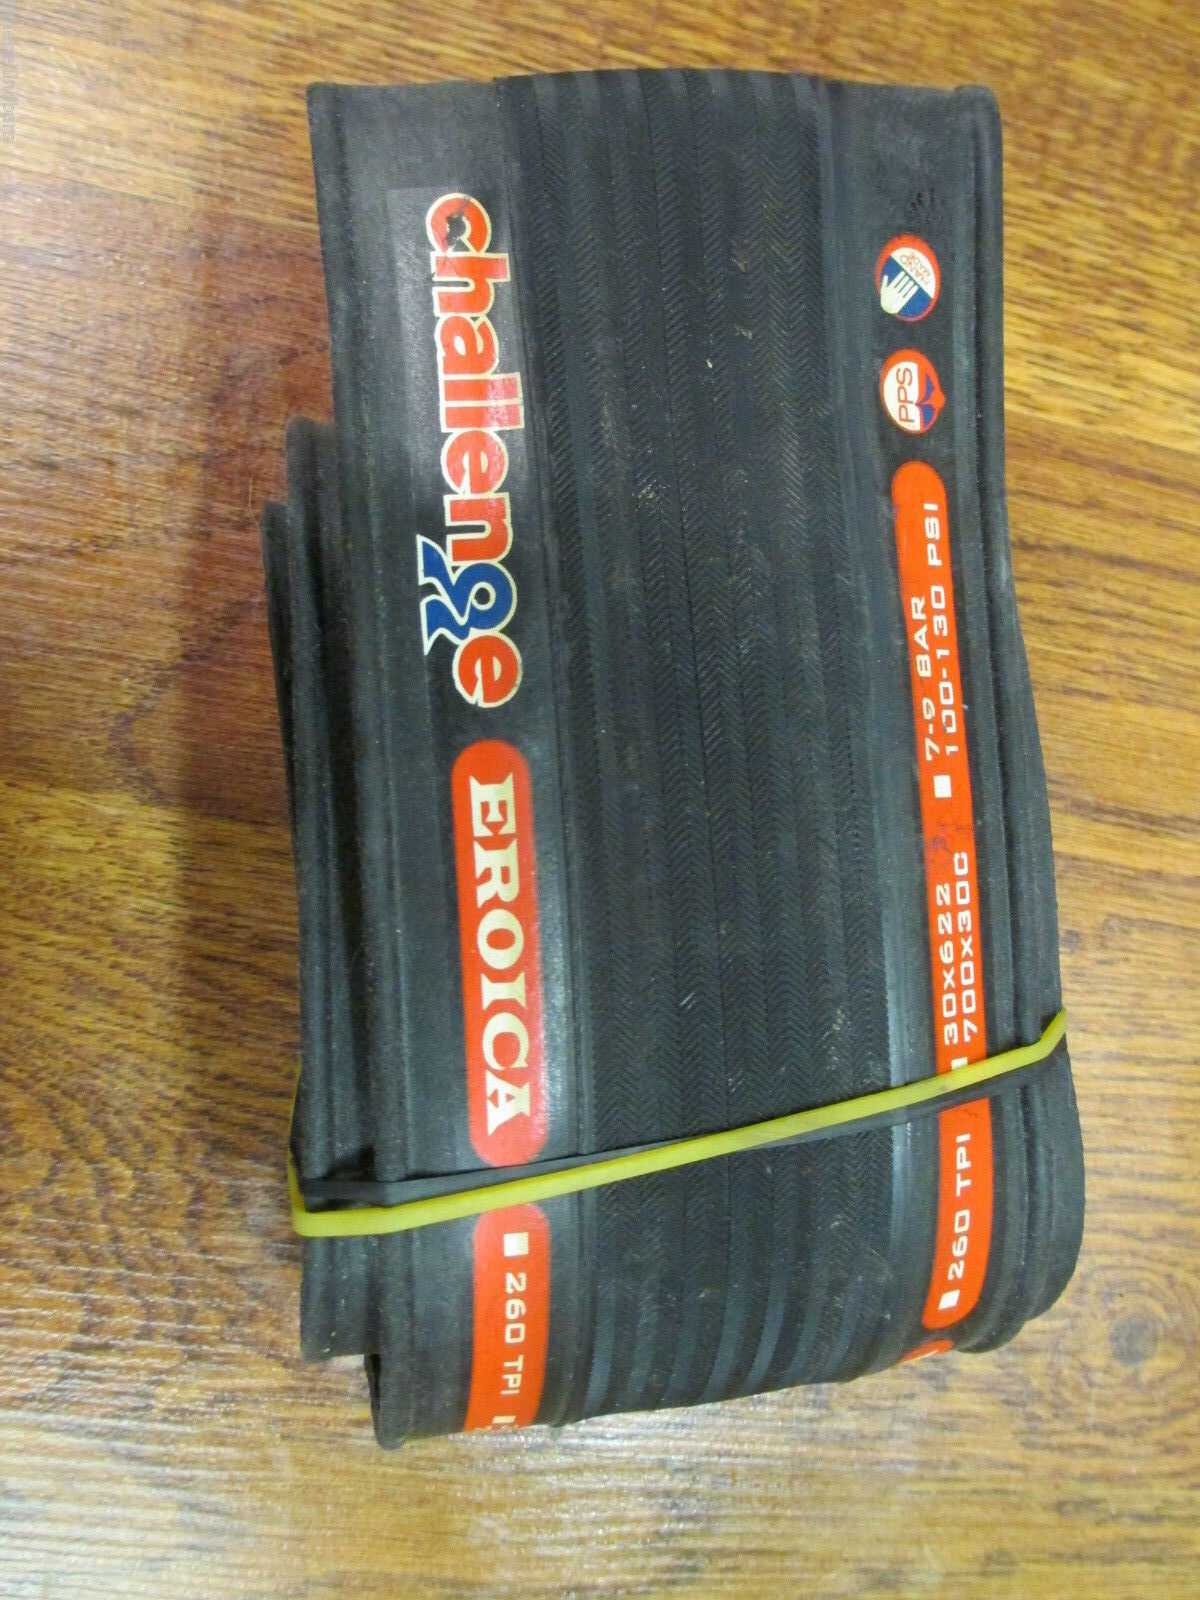 CHALLENGE EROICA 260TPI 100-130 PSI 700x 30C FOLDABLE  CLINCHER TIRE  be in great demand